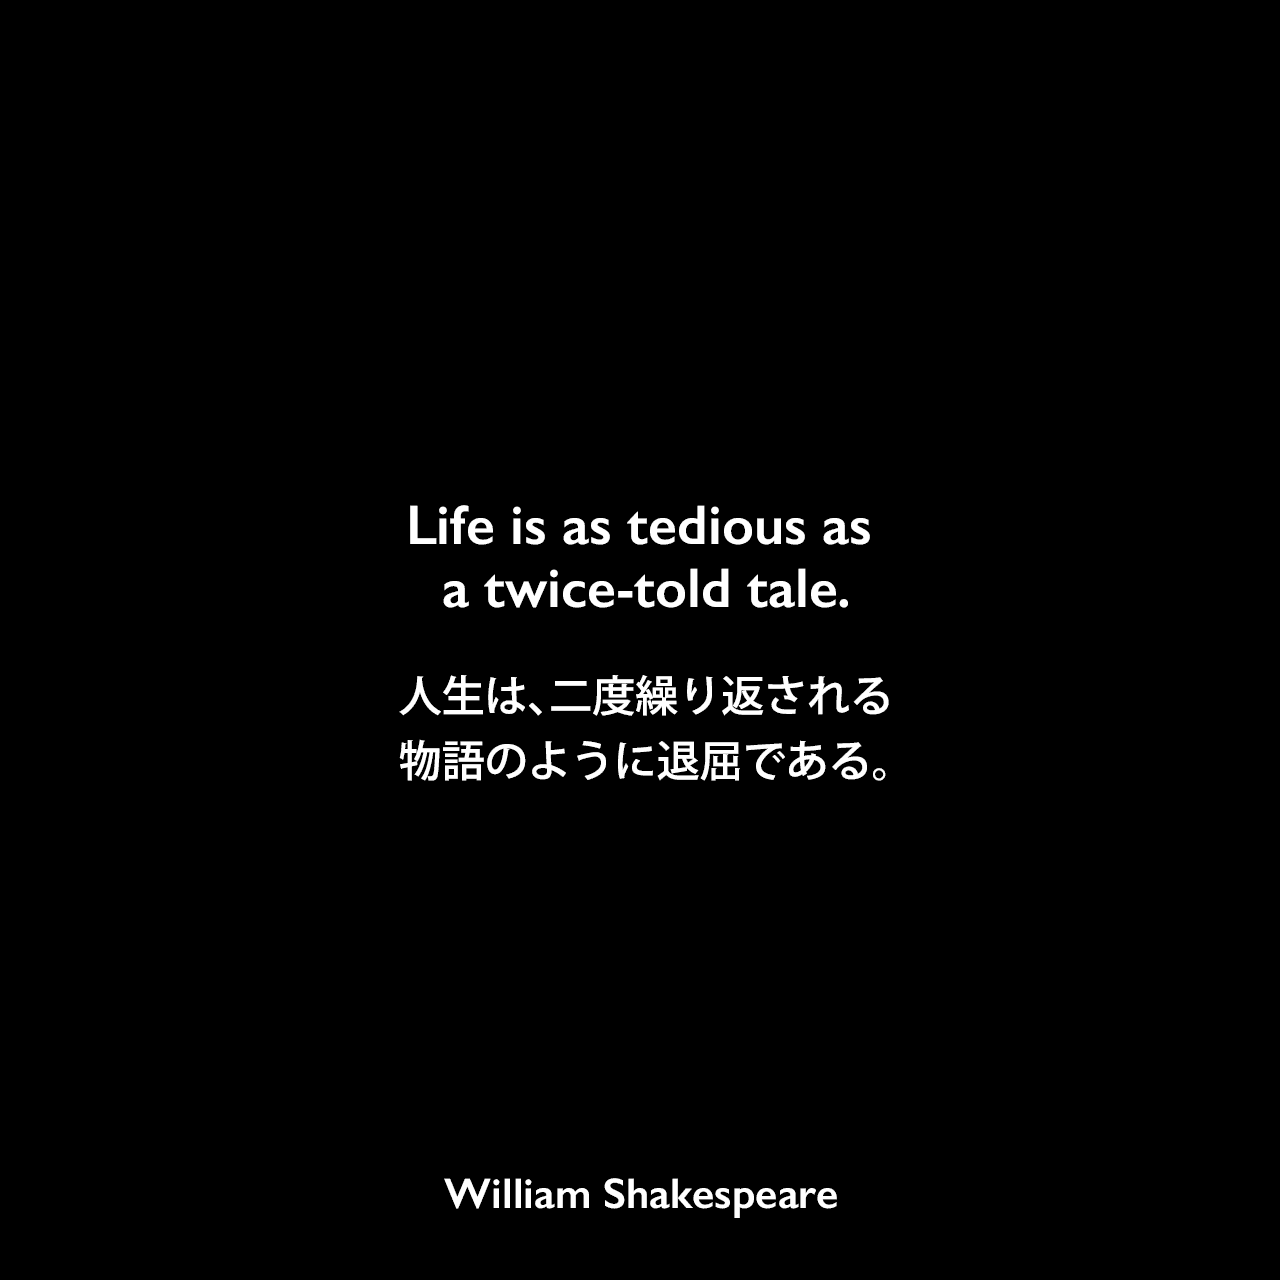 Life is as tedious as a twice-told tale.人生は、二度繰り返される物語のように退屈である。William Shakespeare